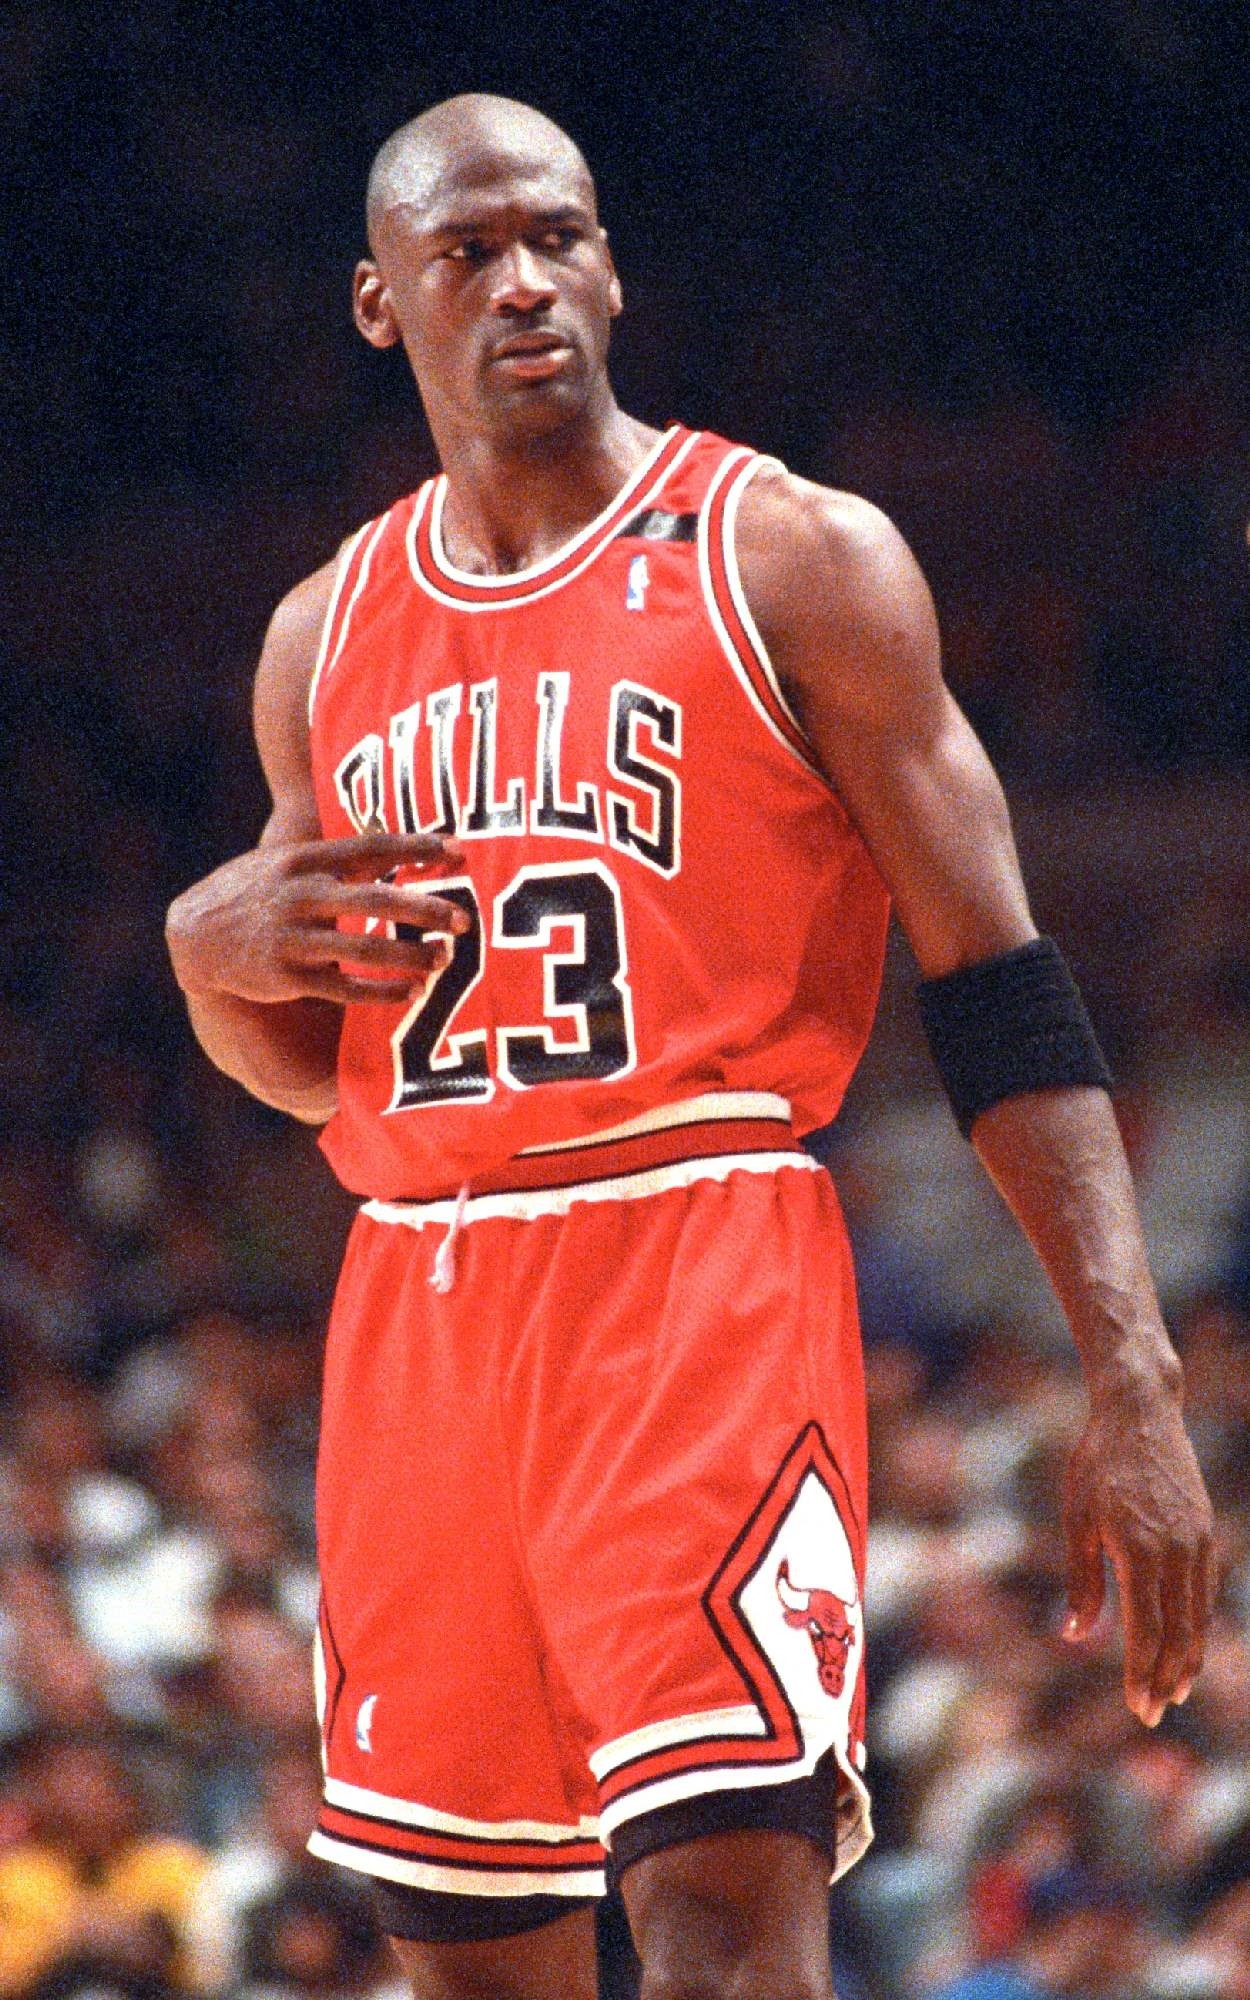 Michael Jordan Iphone 6 Wallpaper 63 Images